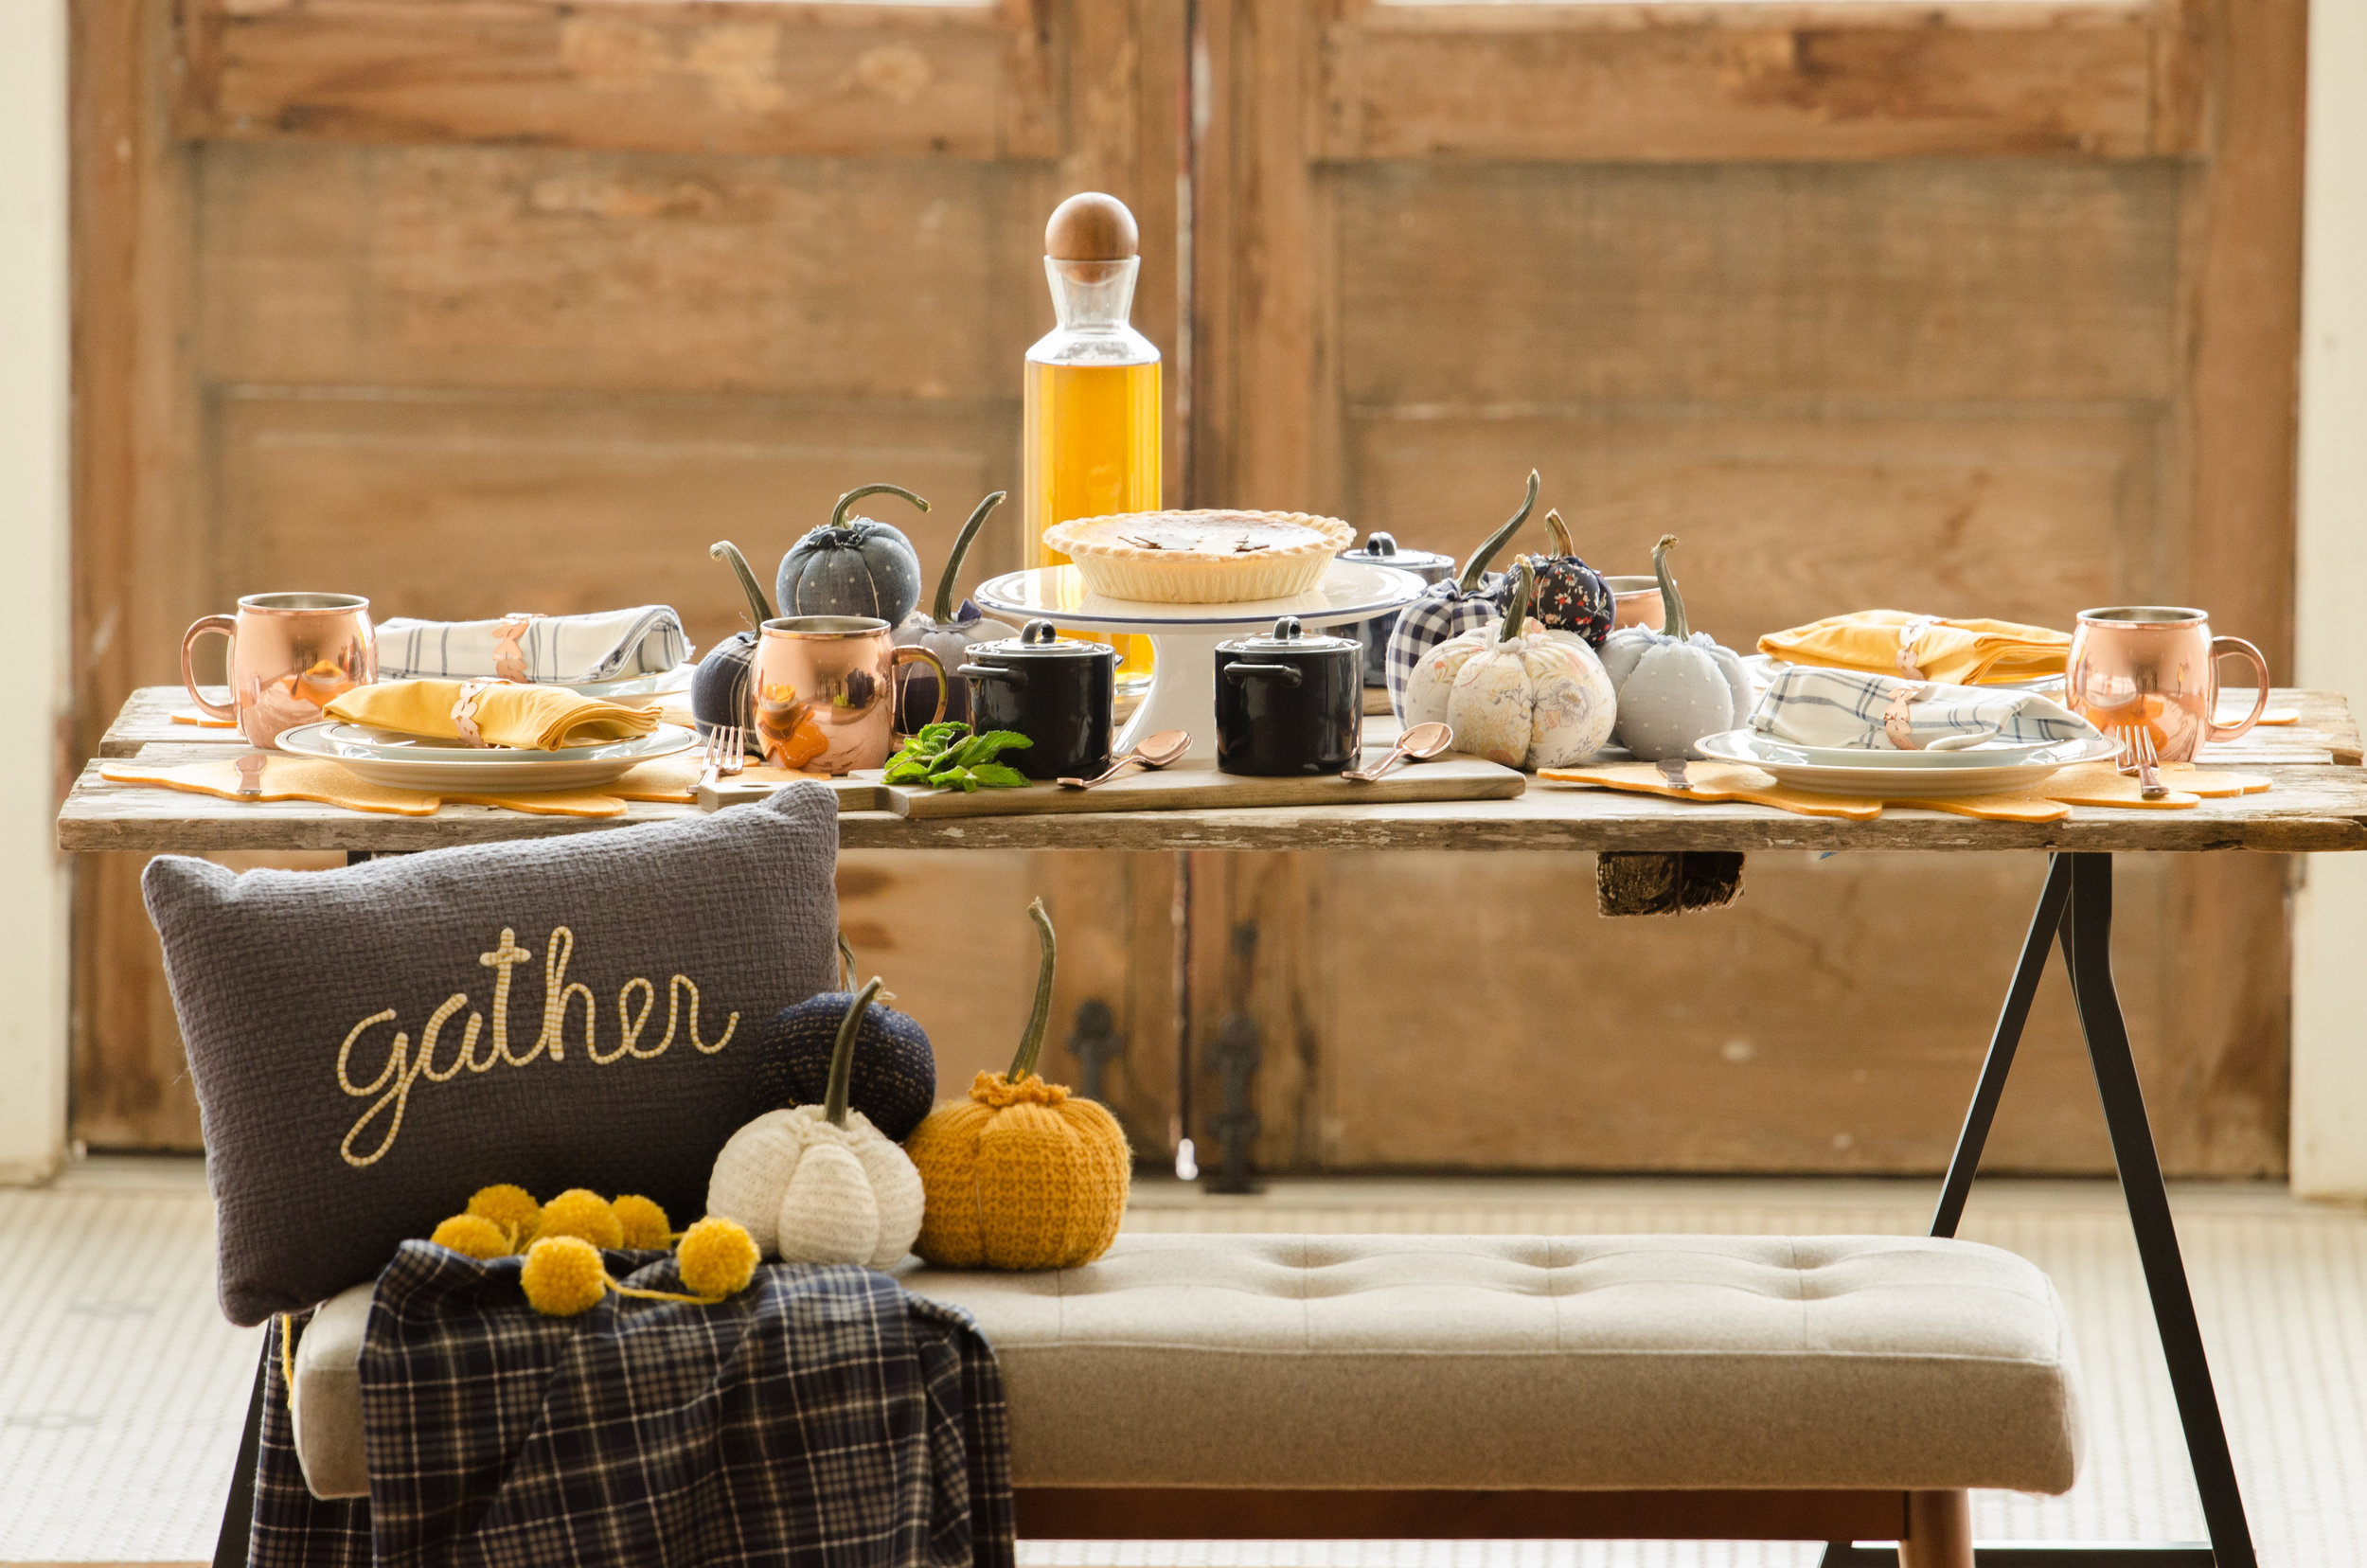 Gather around for Cozy and Stylish Thanksgiving table setting ideas in the color palette of cream, orange and blue with copper elements. See more Thanksgiving Pictures from party planner, Mint Event Design in Austin, Texas on www.minteventdesign.com #thanksgiving #thanksgivingdecorations #tablescape #thanksgivingtable #pumpkins